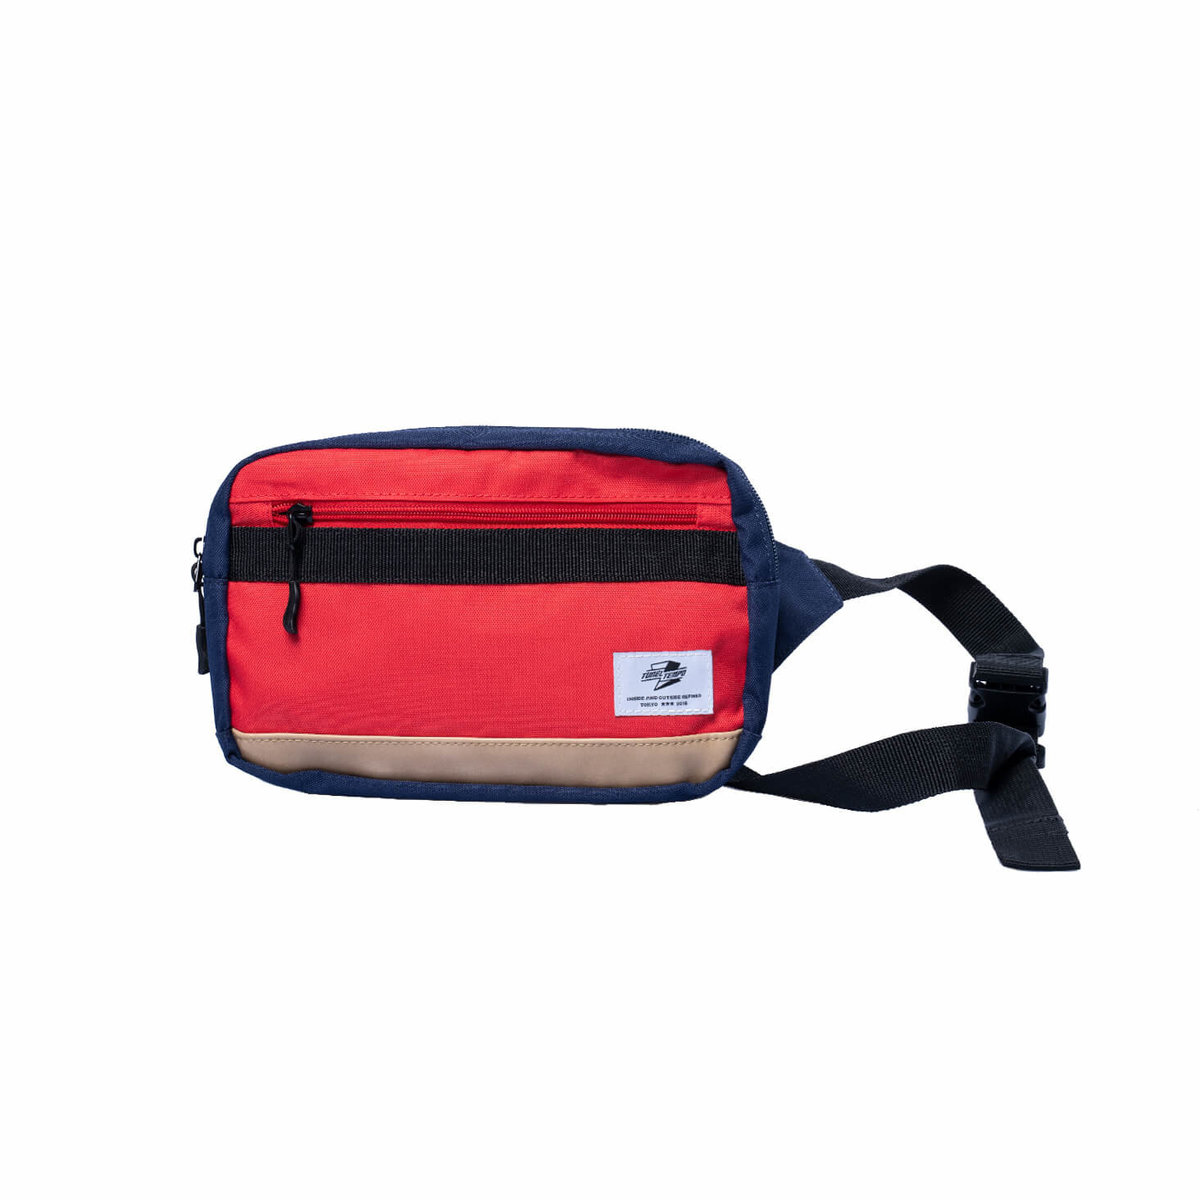 Tunnel Tempo cross body bag backpack with tooling trend (red+blue)